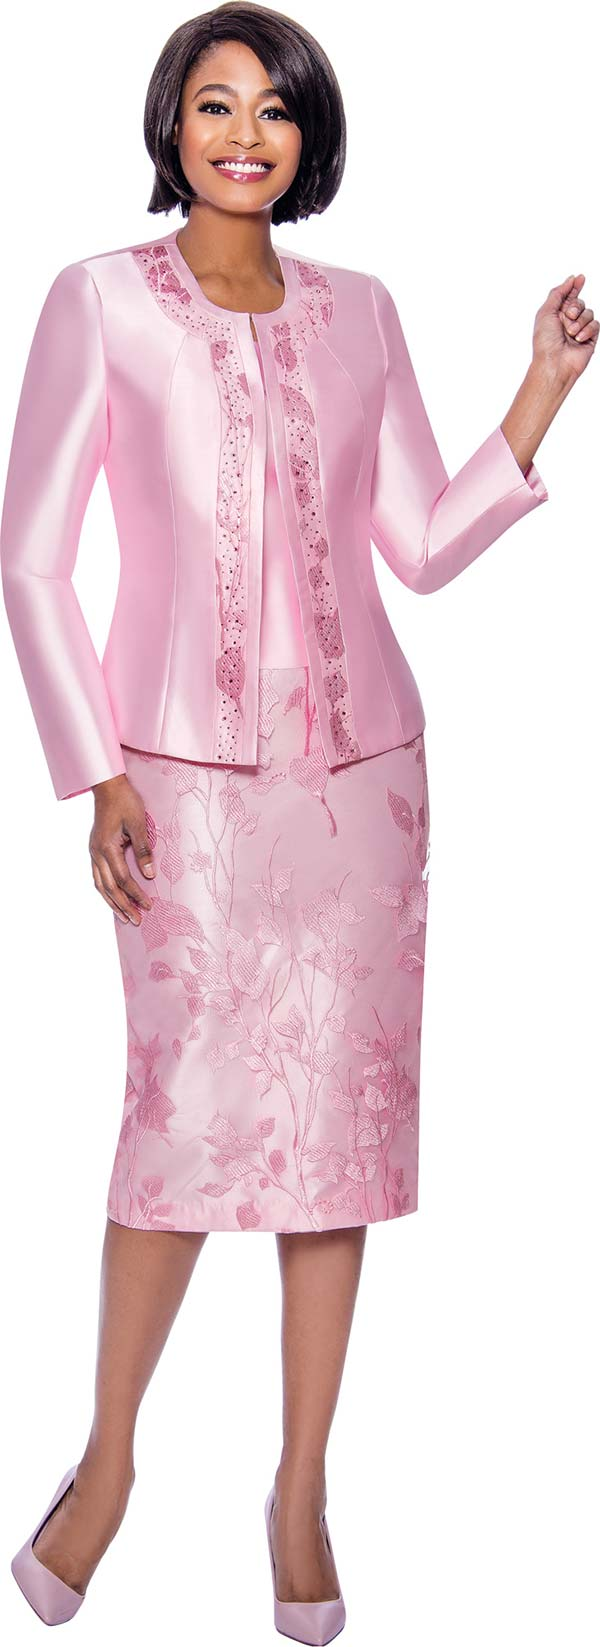 Susanna 3942-Pink - Ladies Church Suit With Floral Textured Skirt Embellished Jacket Trim